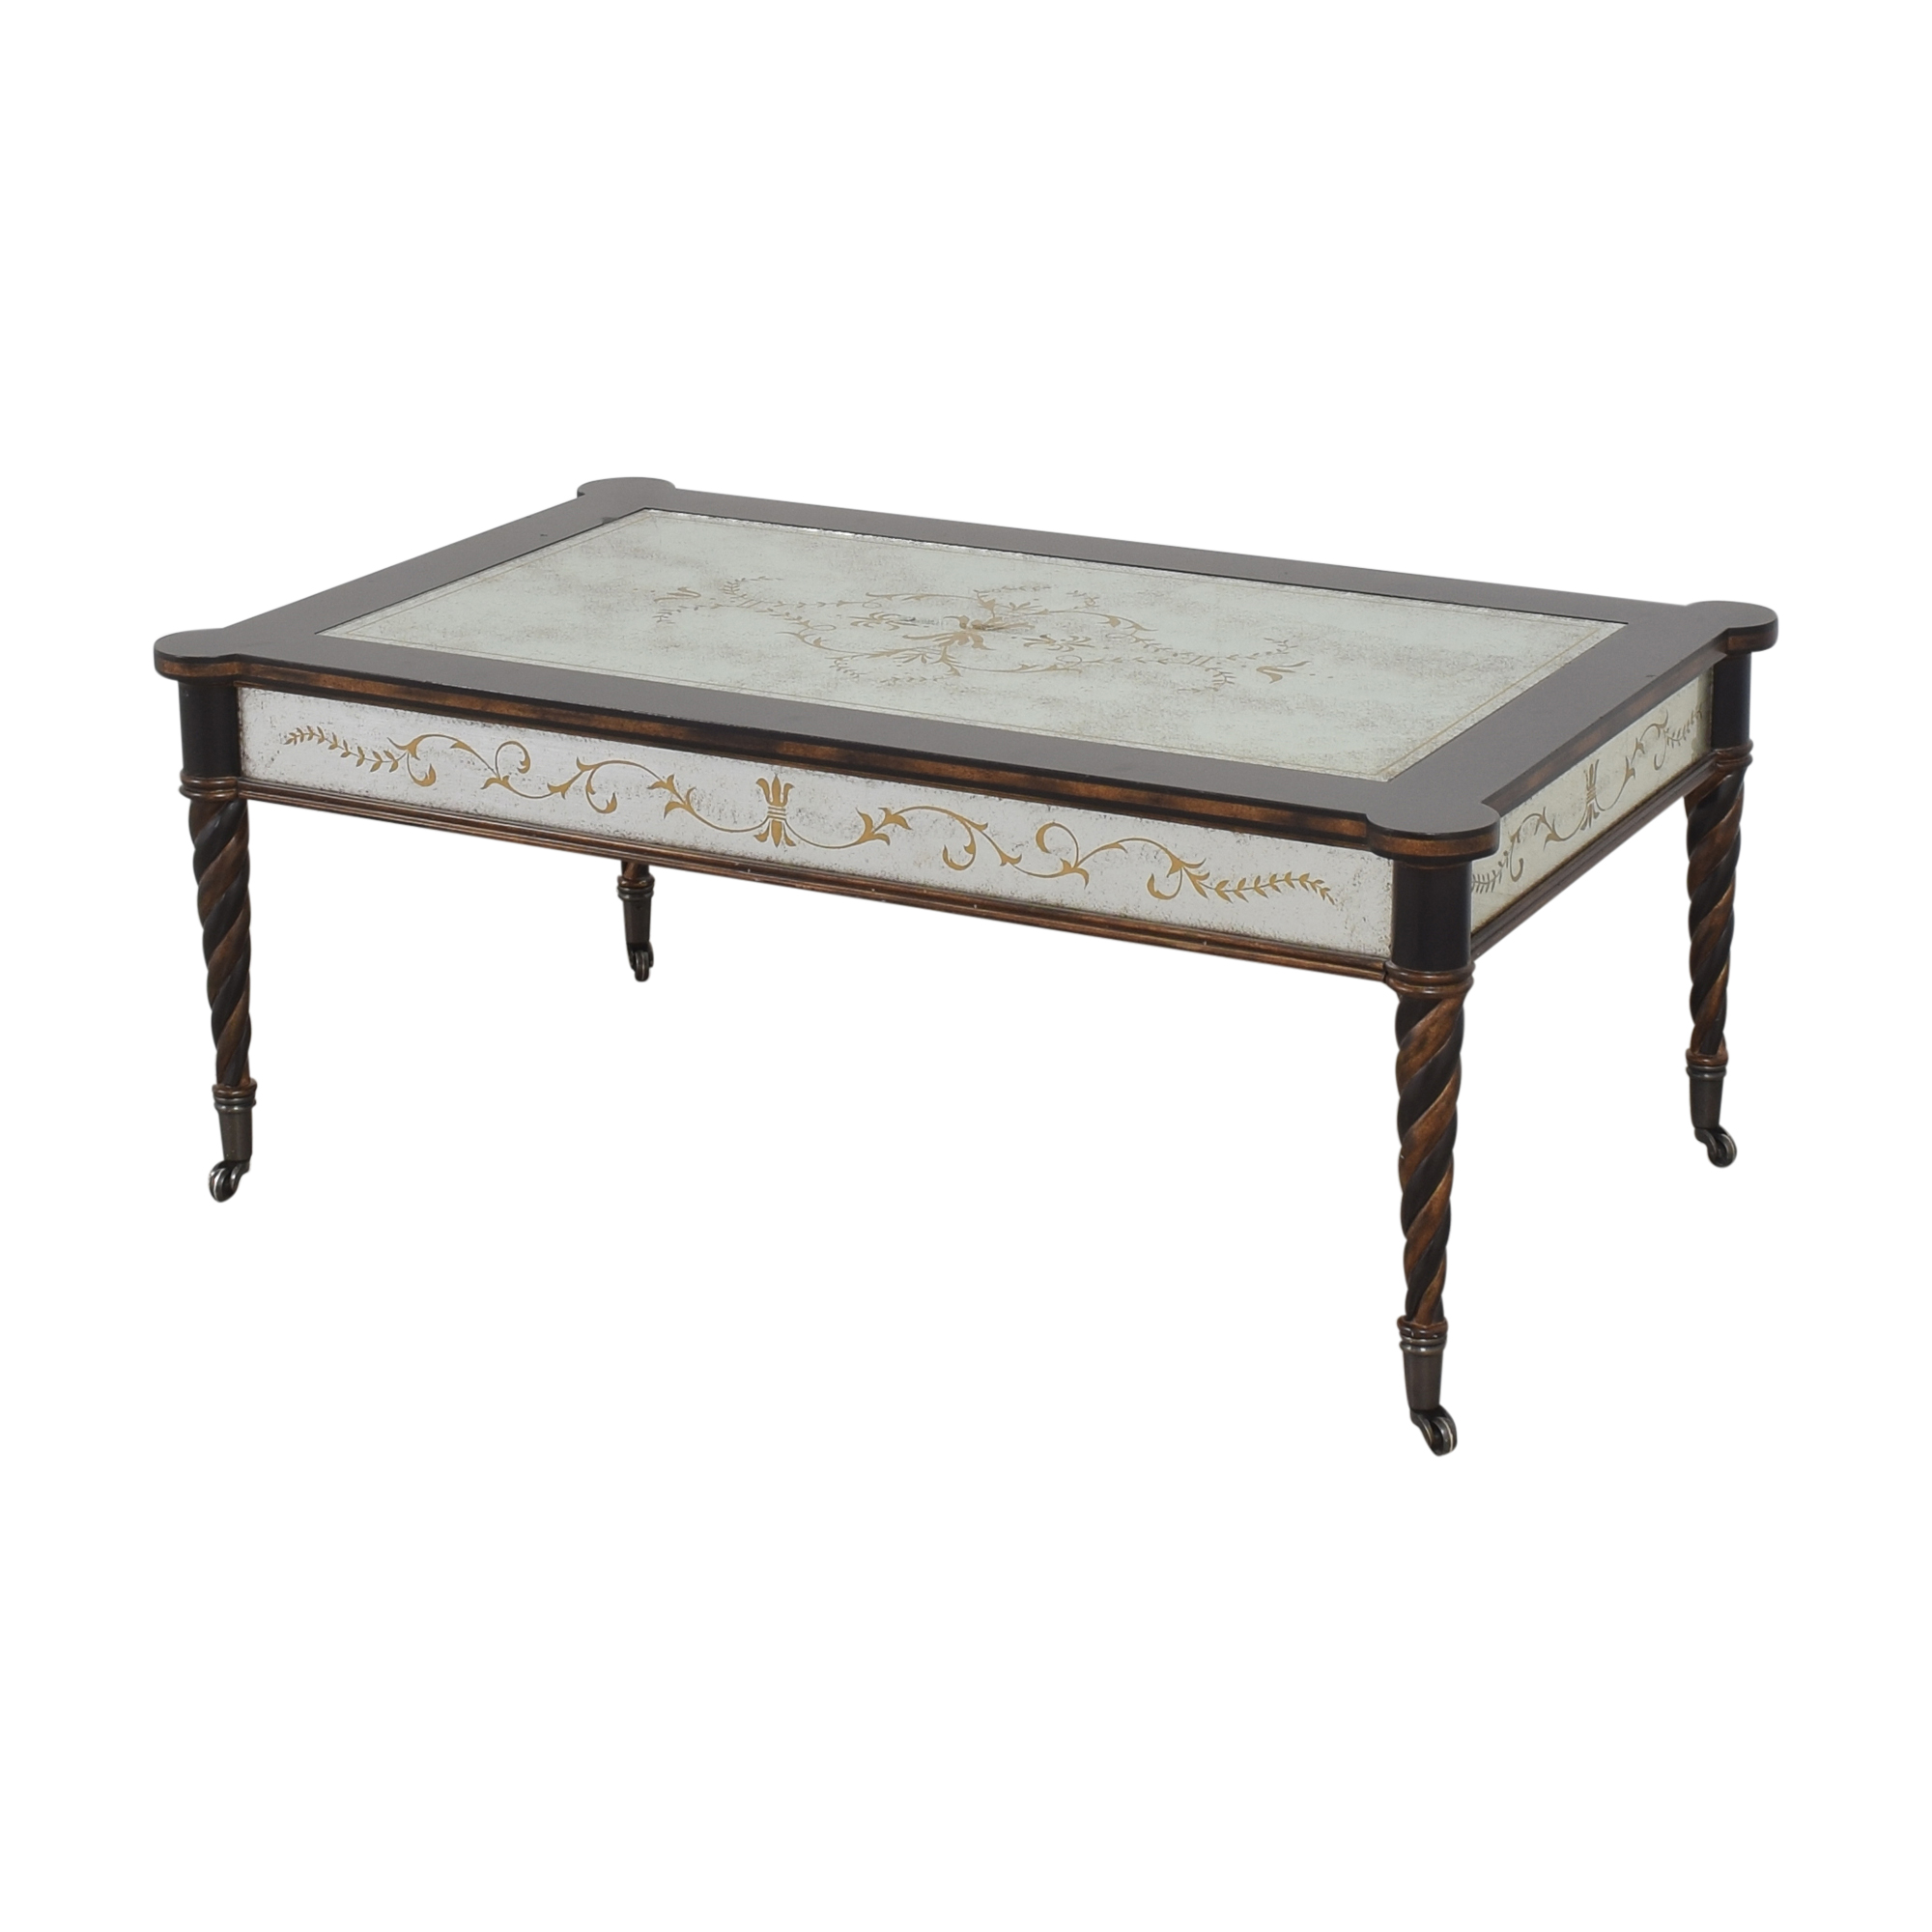 Drexel Heritage Drexel Heritage by Lillian August Brynmawr Cocktail Table Coffee Tables